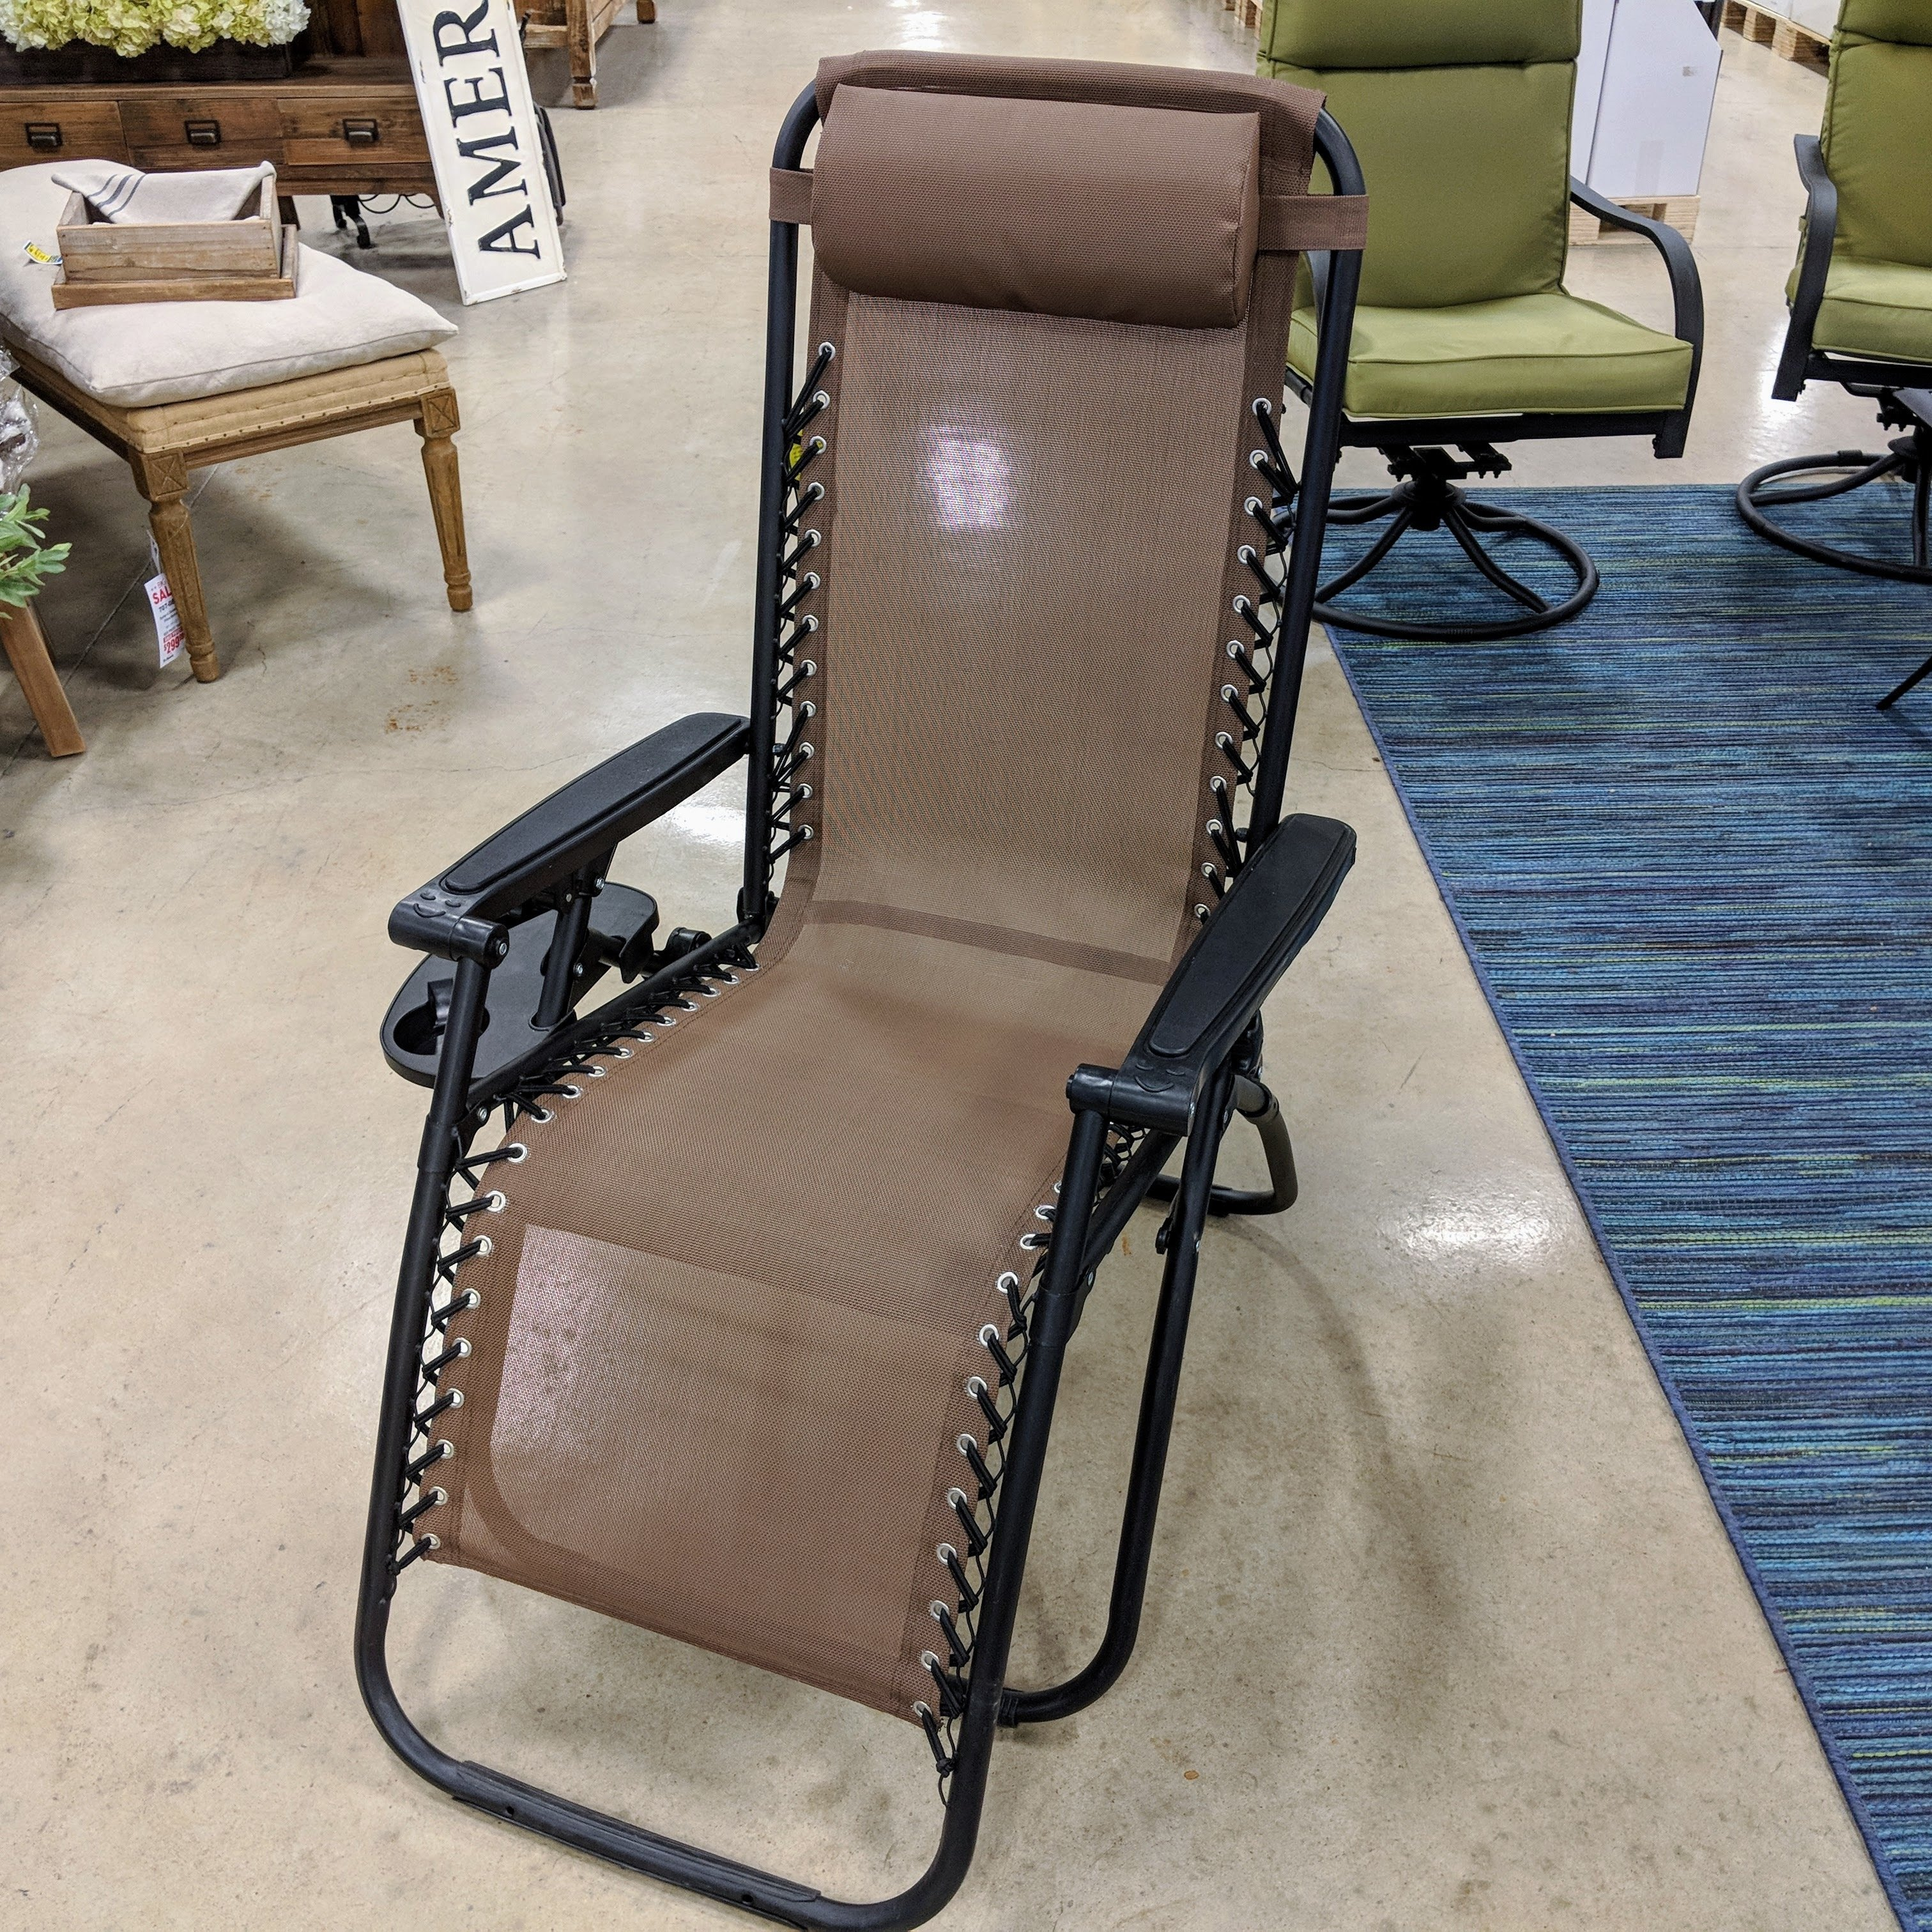 Steel Anti-Gravity Chair with Cup Holder